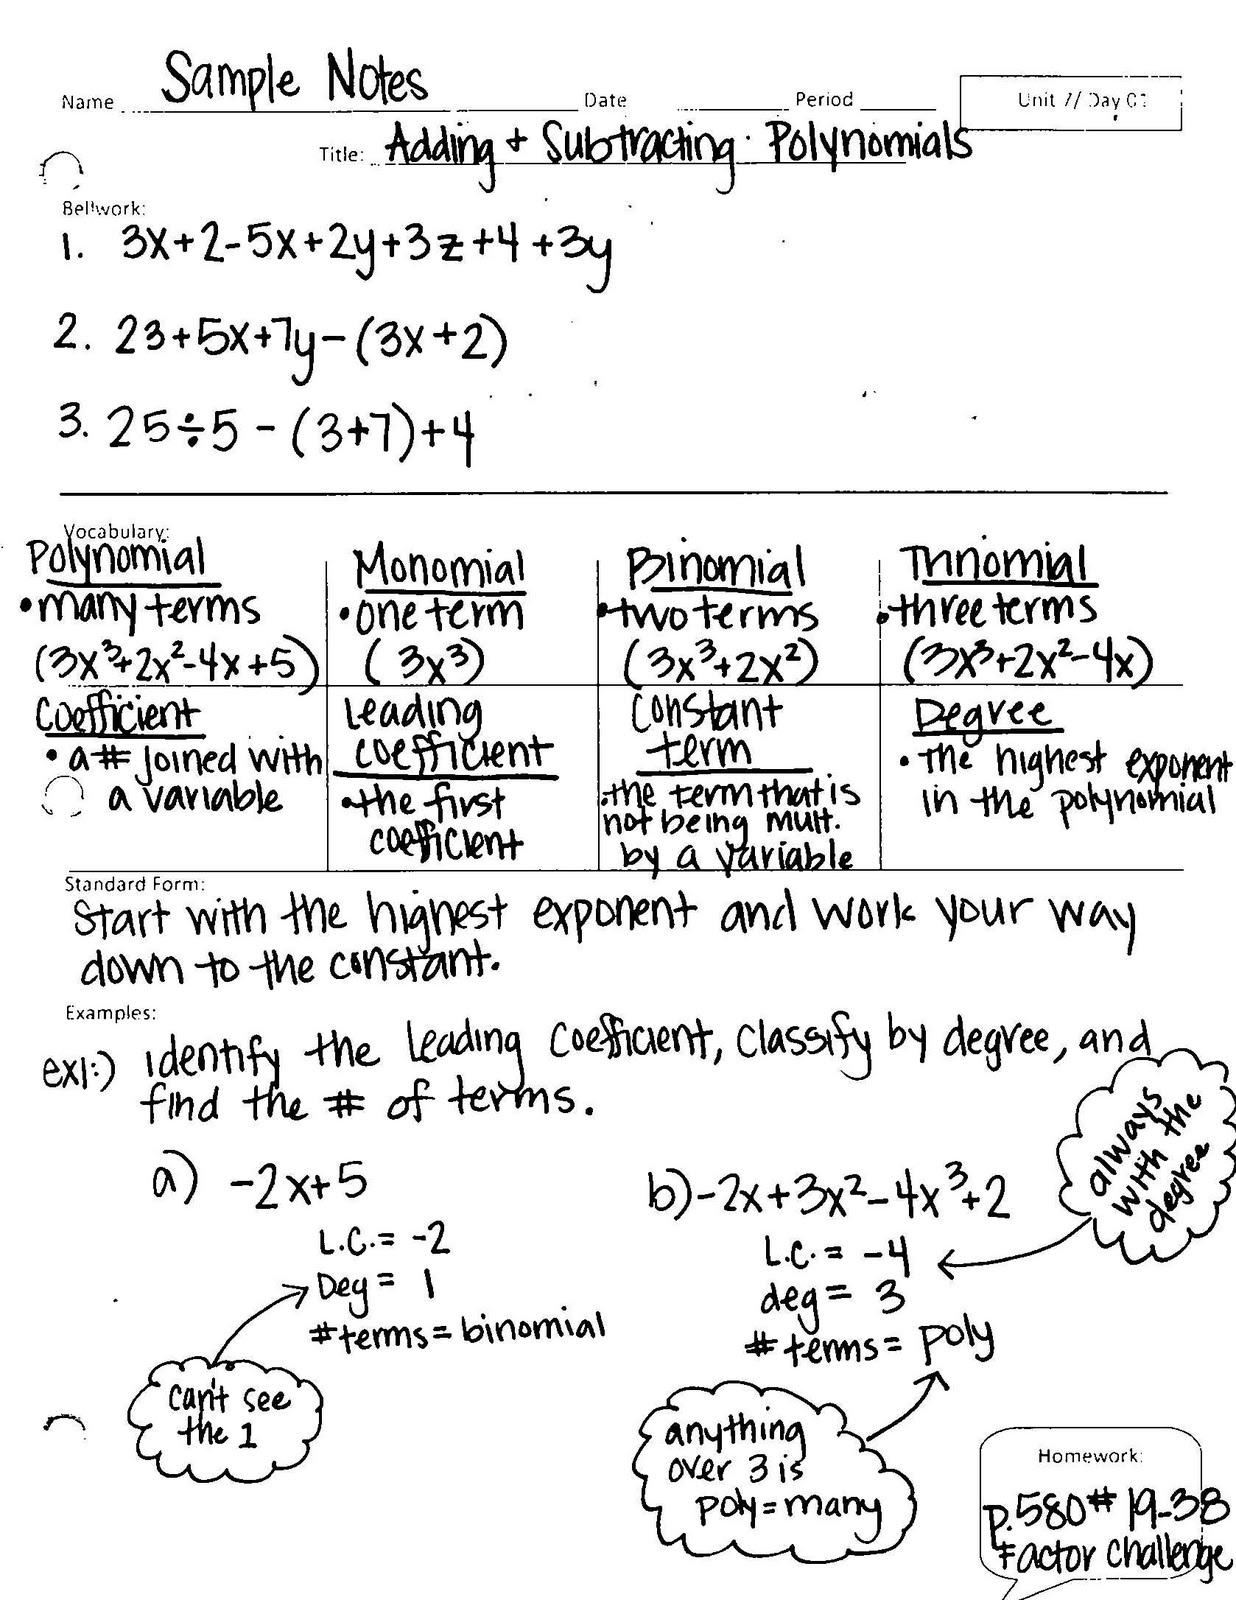 Algebra 1 Unit 7 Day 1 Adding Amp Subtracting Polynomials